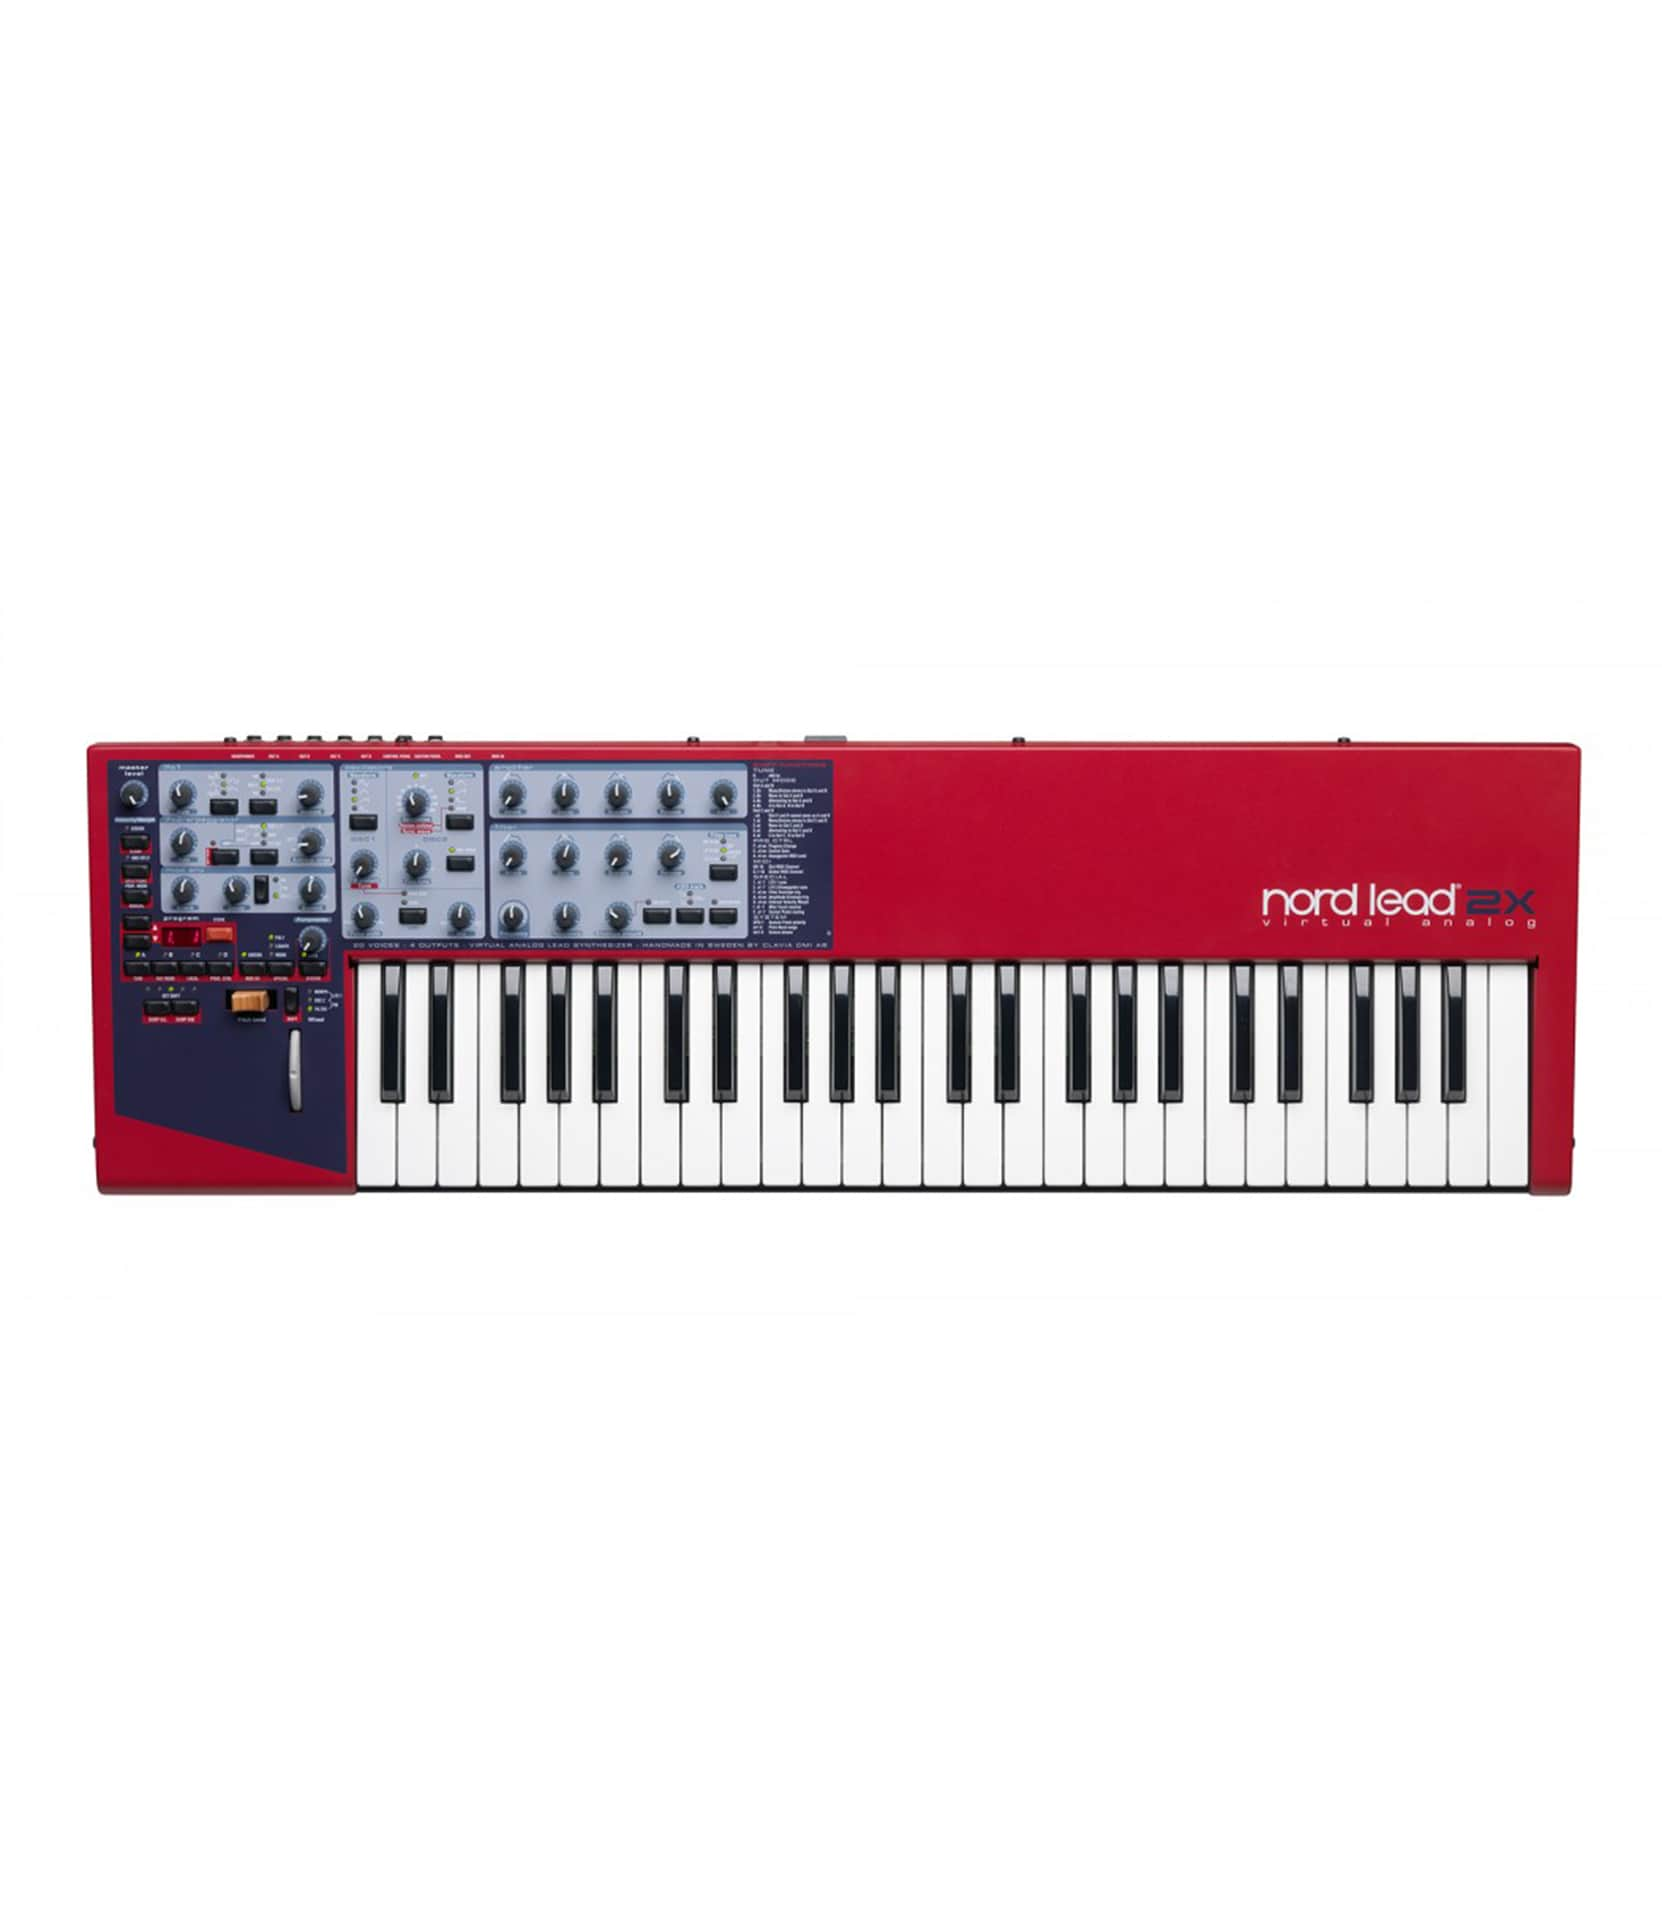 buy nord lead 2x virtual analog synthesizer